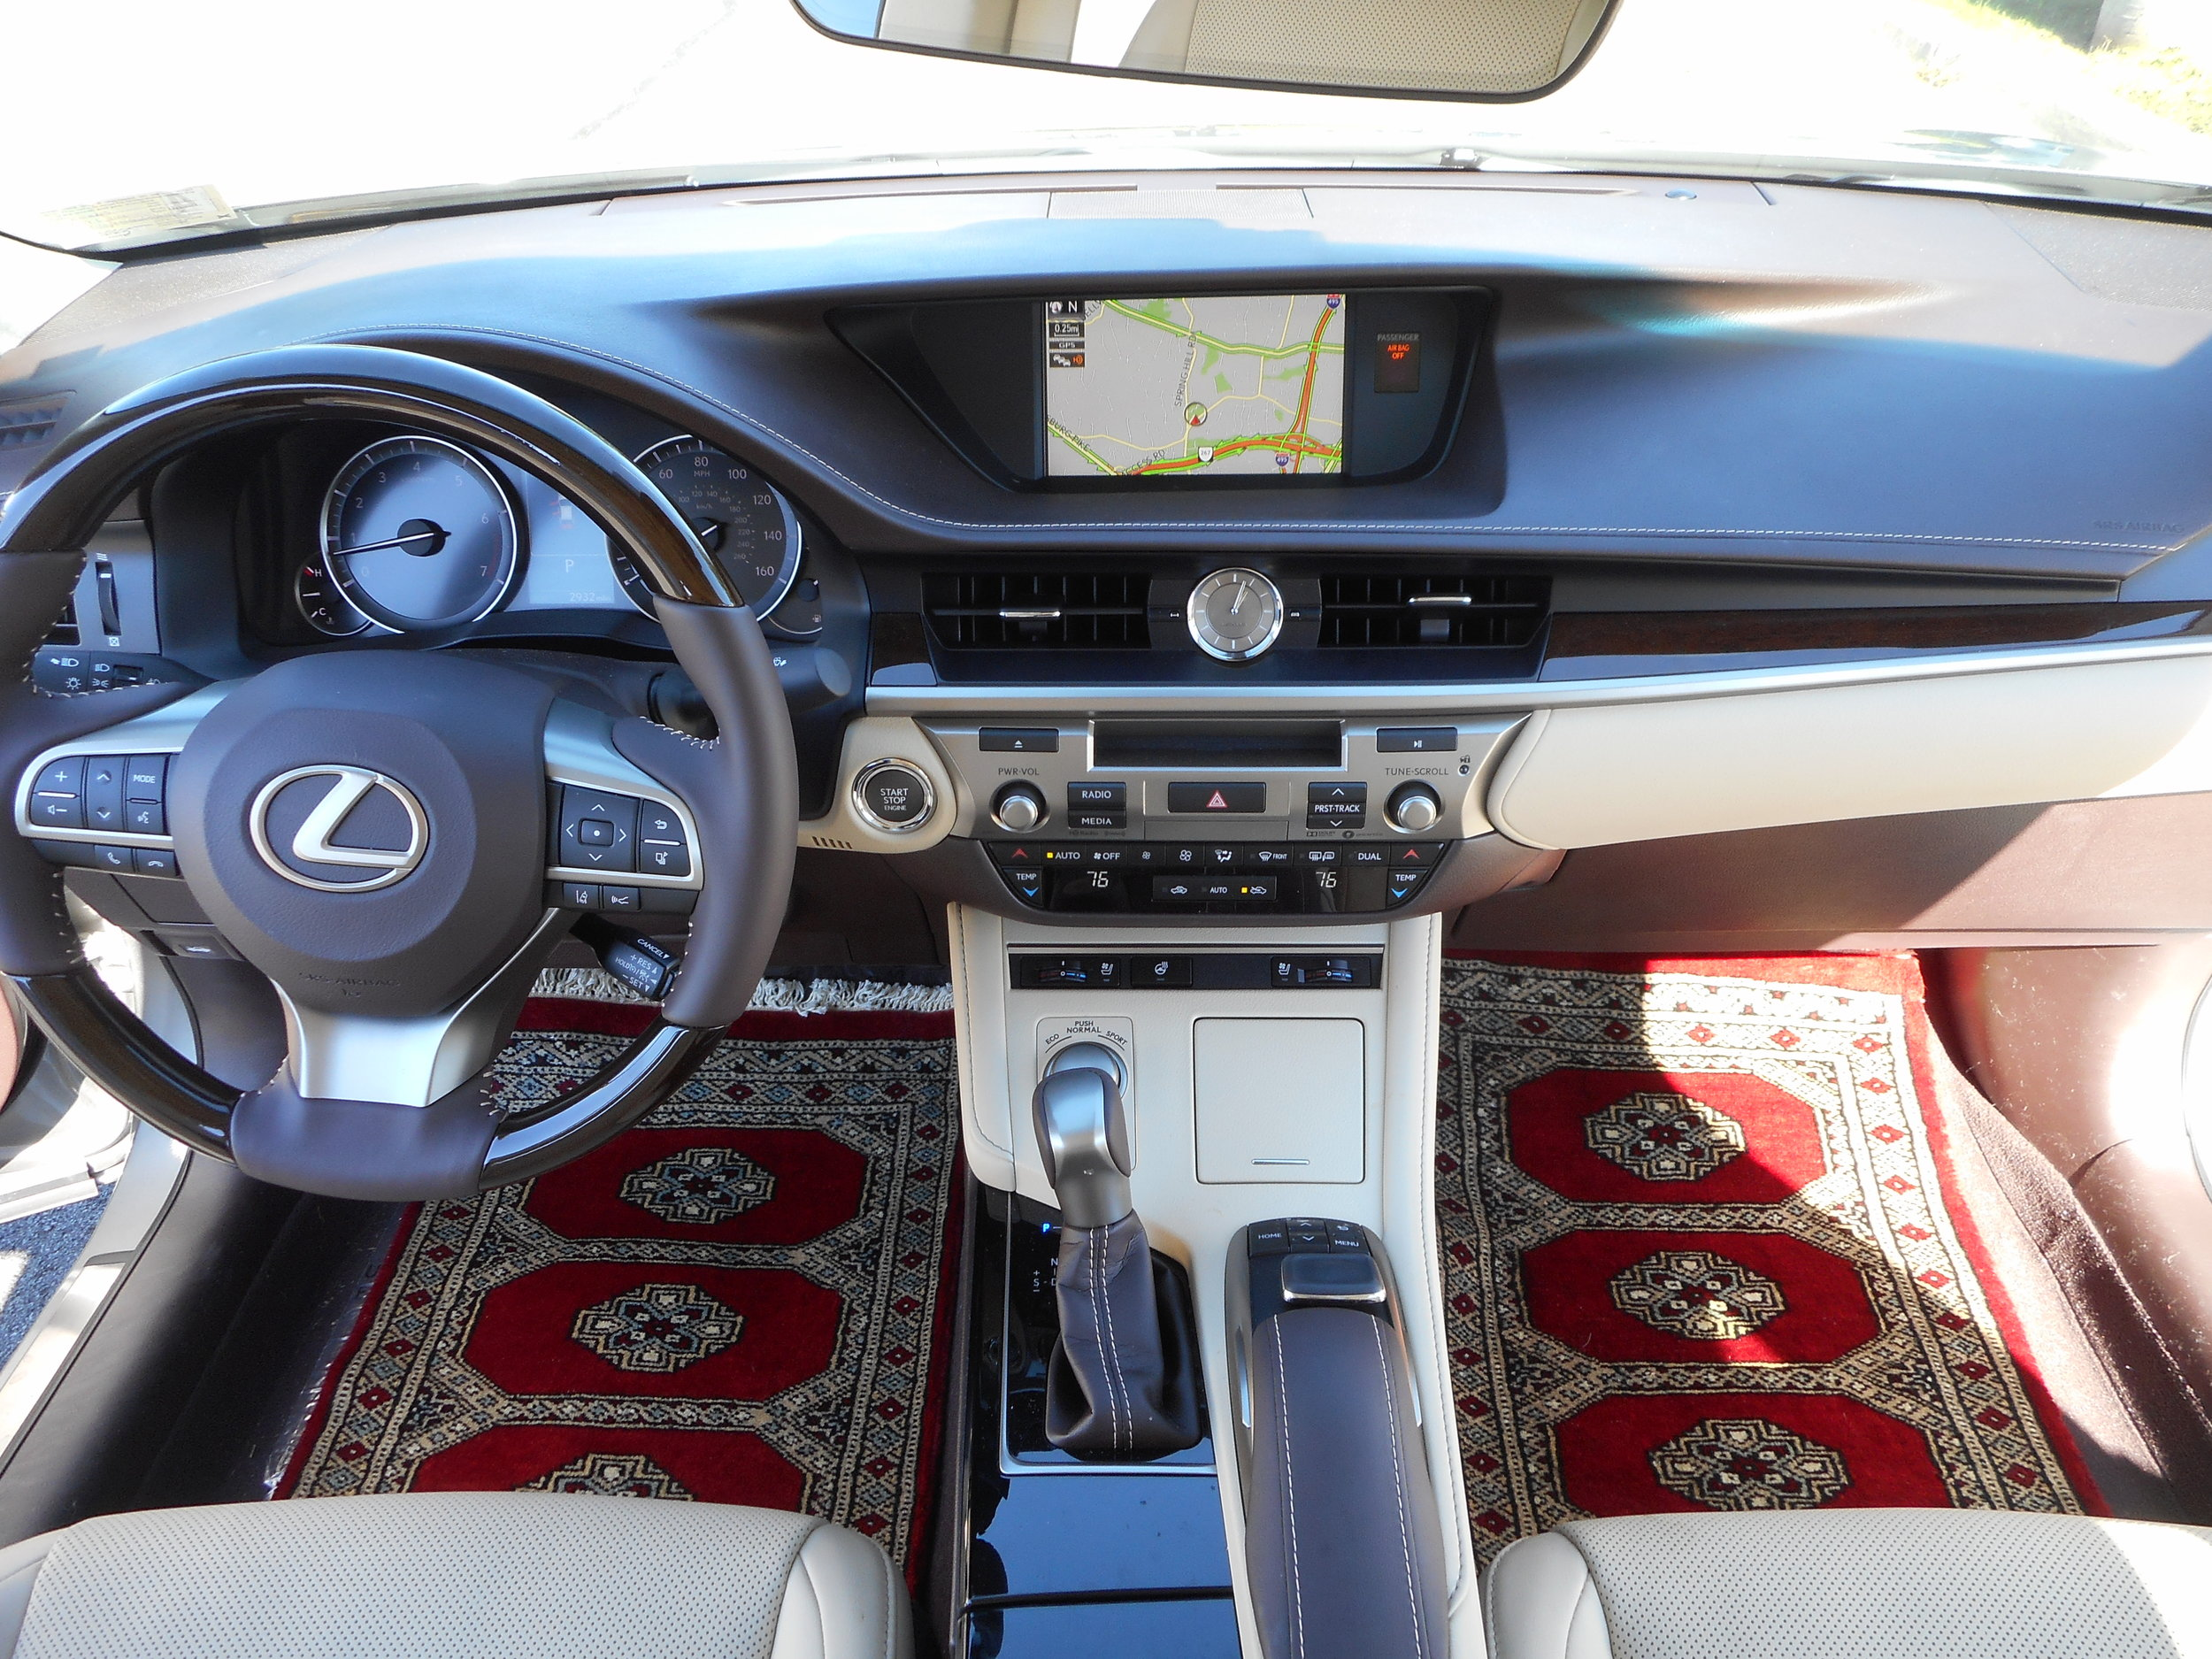 The Tisbury in Lexus ES350